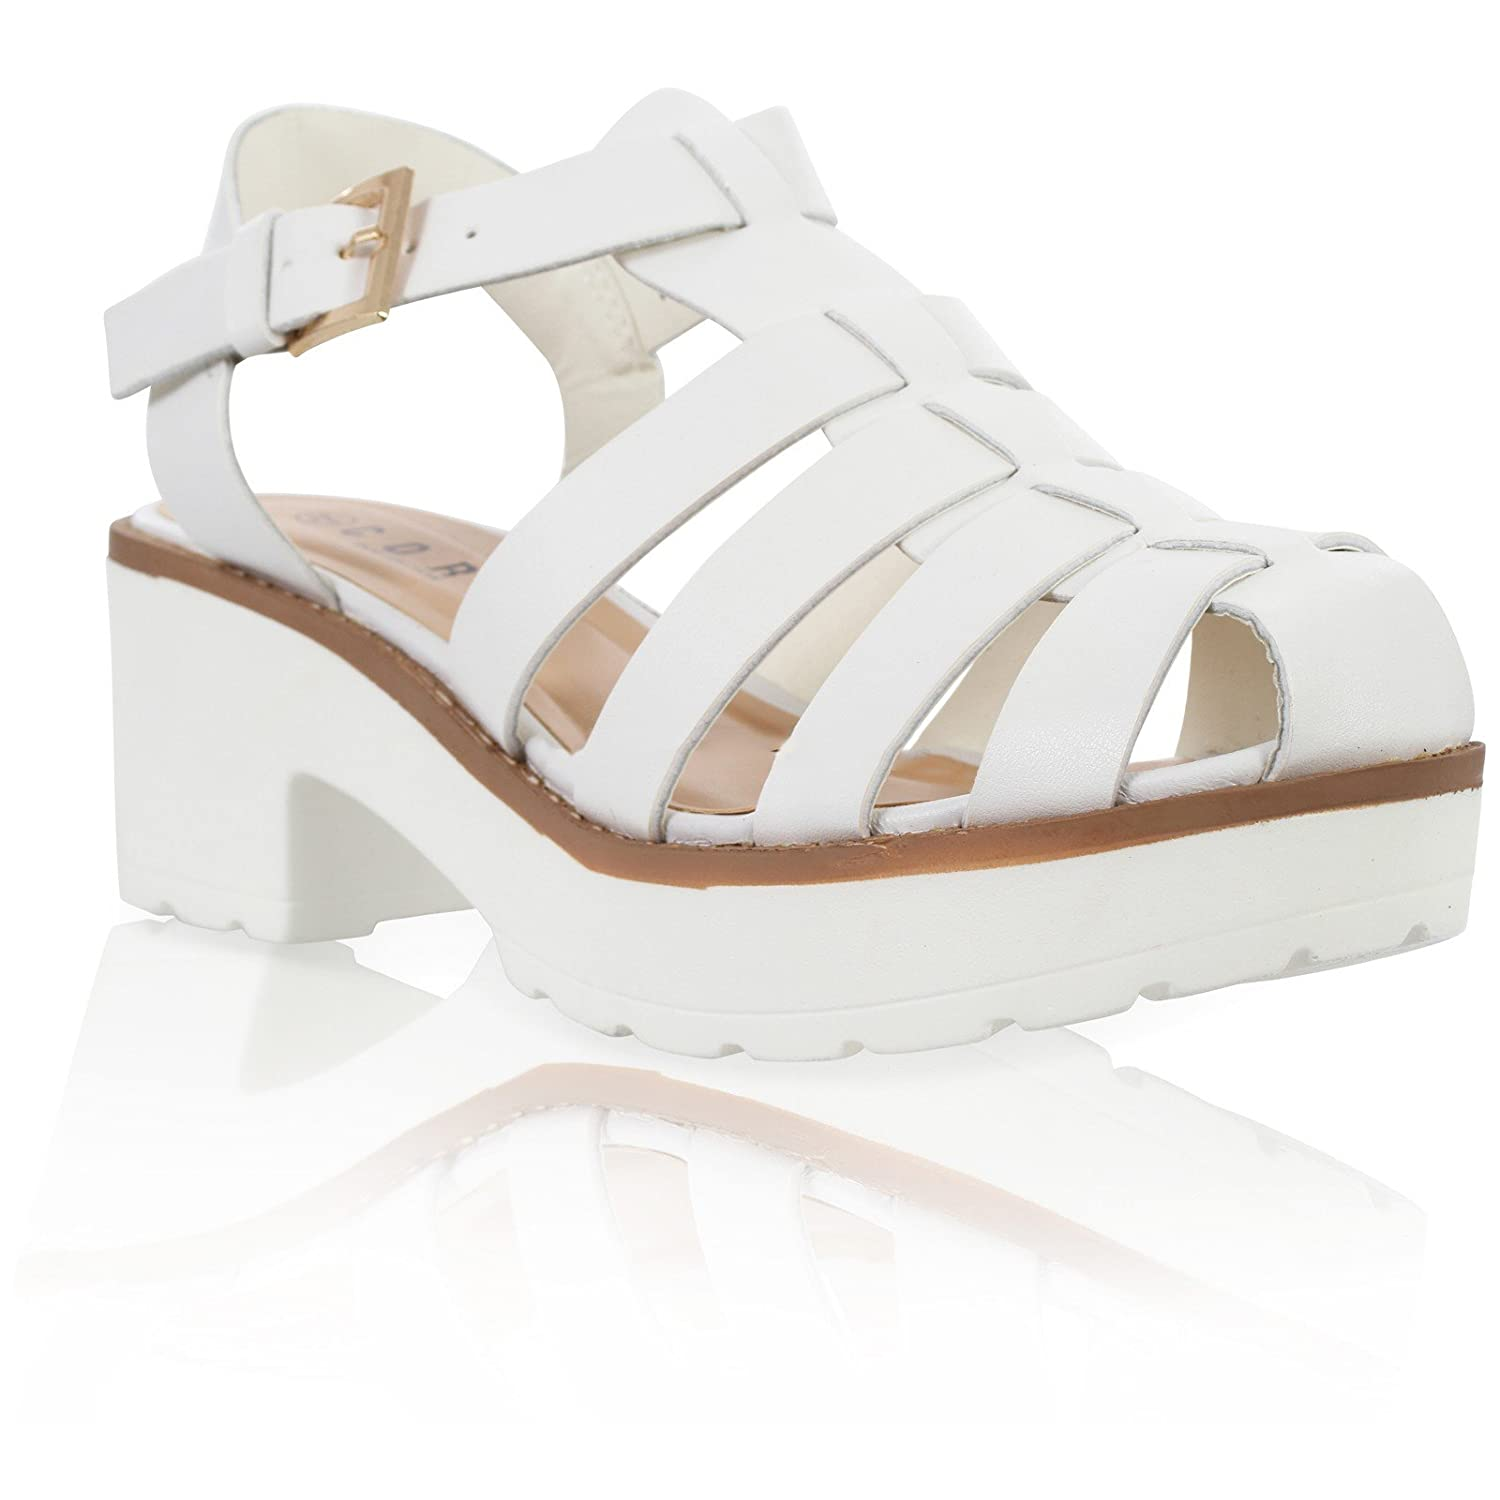 6845a1d3f1f CORE COLLECTION Womens Ladies Cut Out Chunky Block Heel Ankle Strap  Gladiator Sandals Shoes